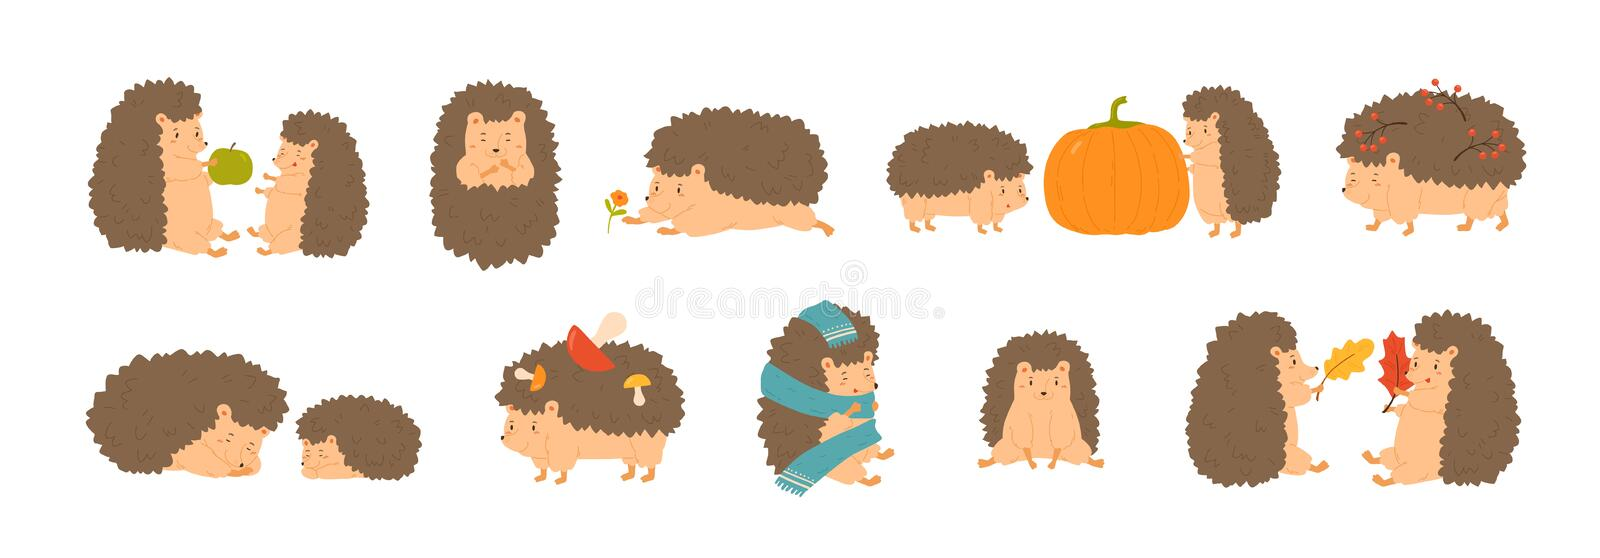 Collection of adorable hedgehogs carrying mushrooms and berries, playing with autumn leaves, sleeping. Set of cute stock illustration